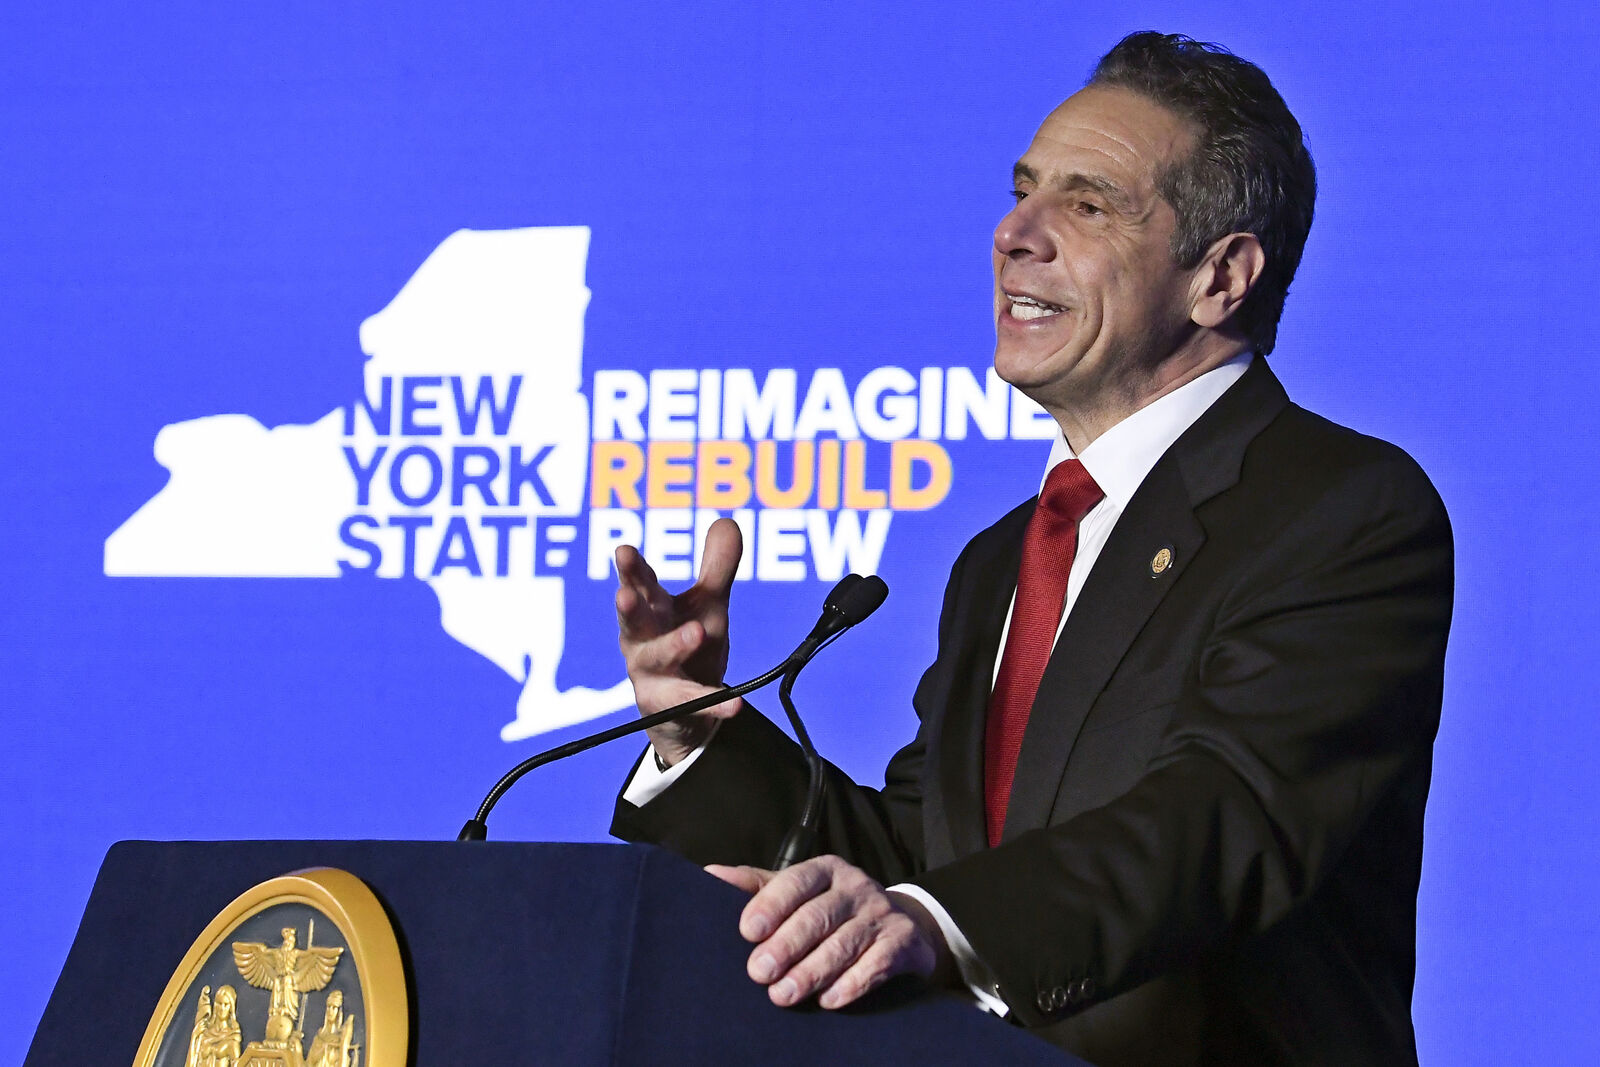 FILE - In this Jan. 11, 2021 file photo, New York Gov. Andrew Cuomo delivers his State of the State address virtually from The War Room at the state Capitol, in Albany, N.Y. (AP Photo/Hans Pennink, Pool, File)